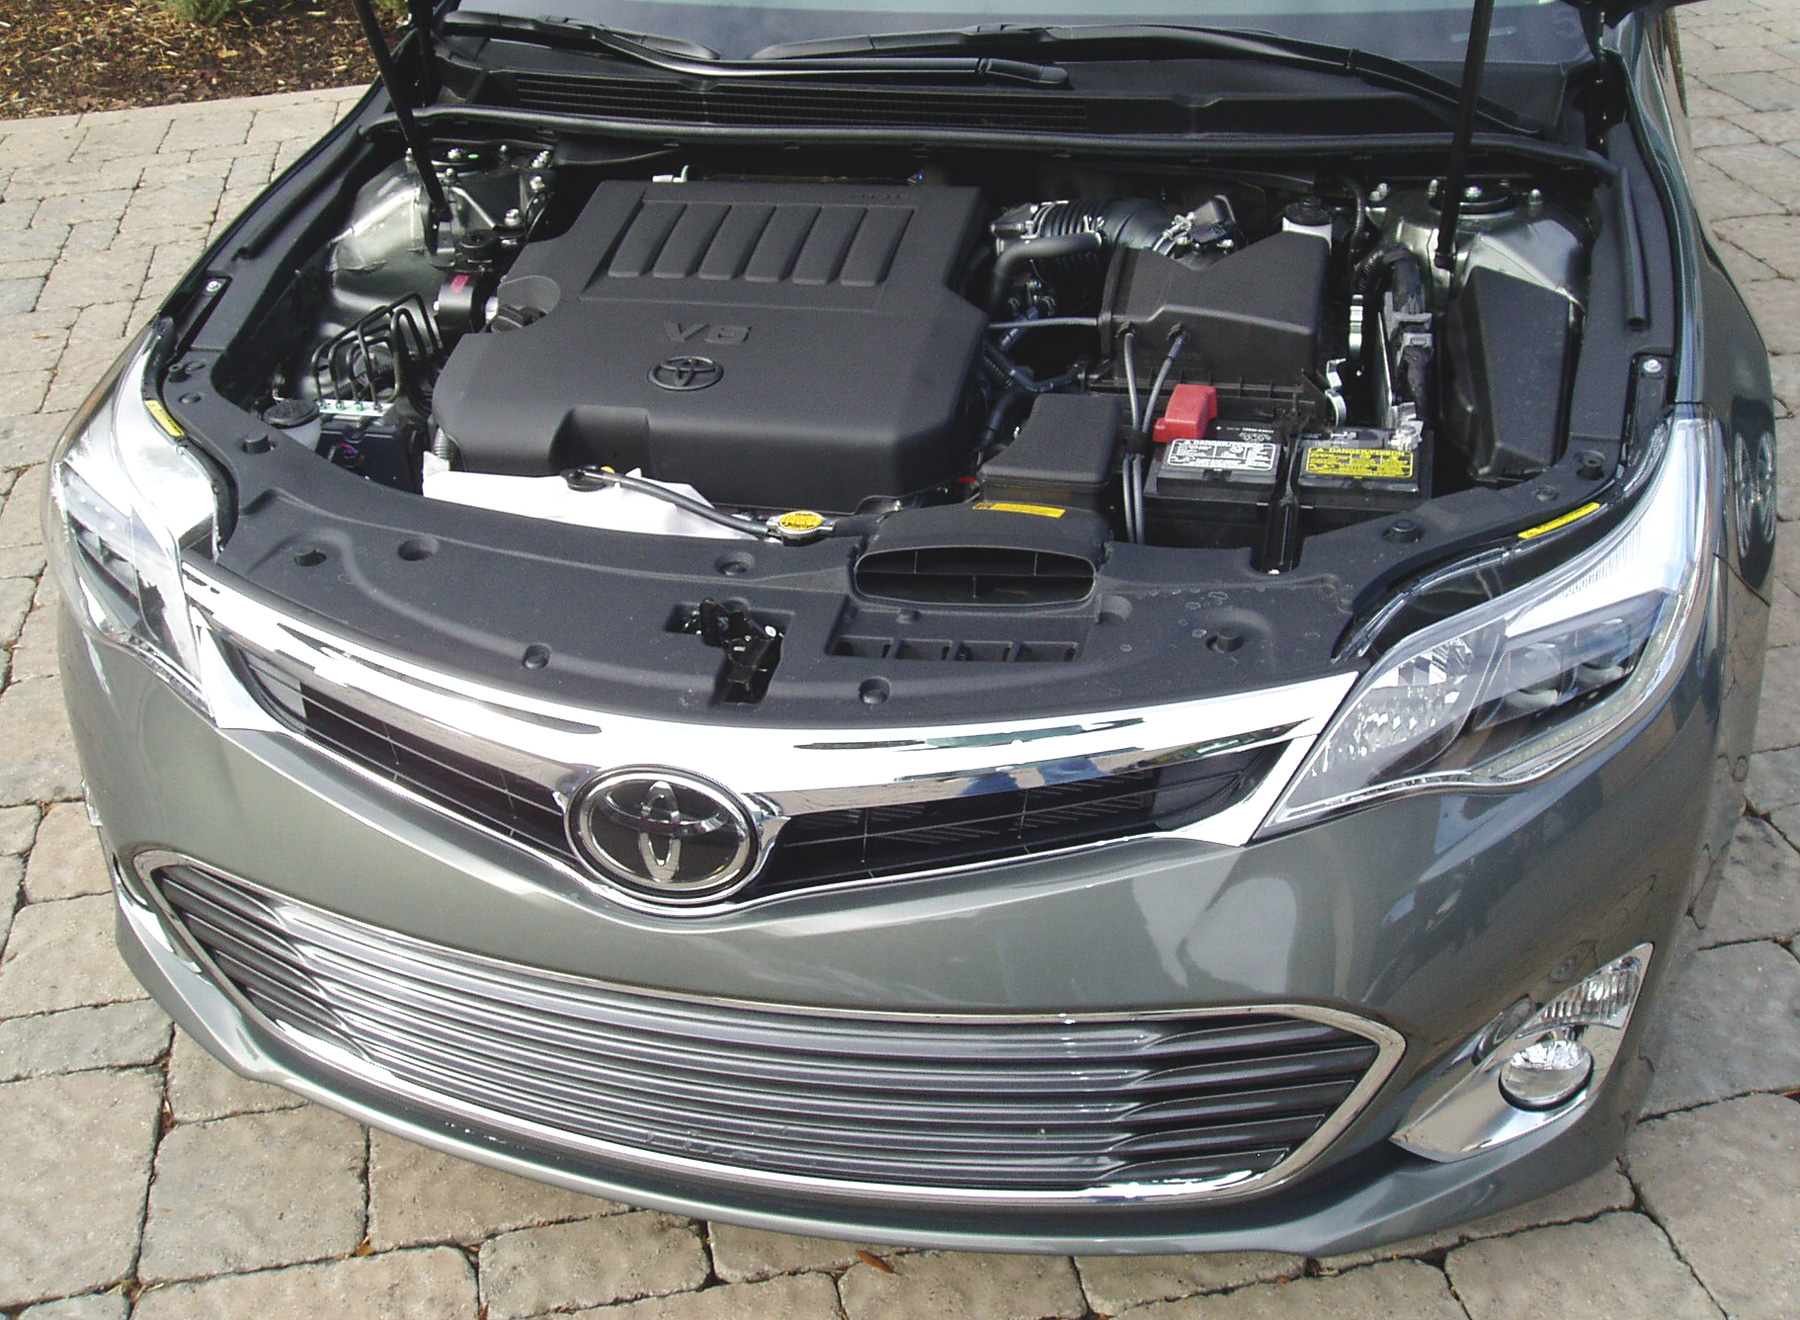 2017 Toyota Avalon Engine Compartment